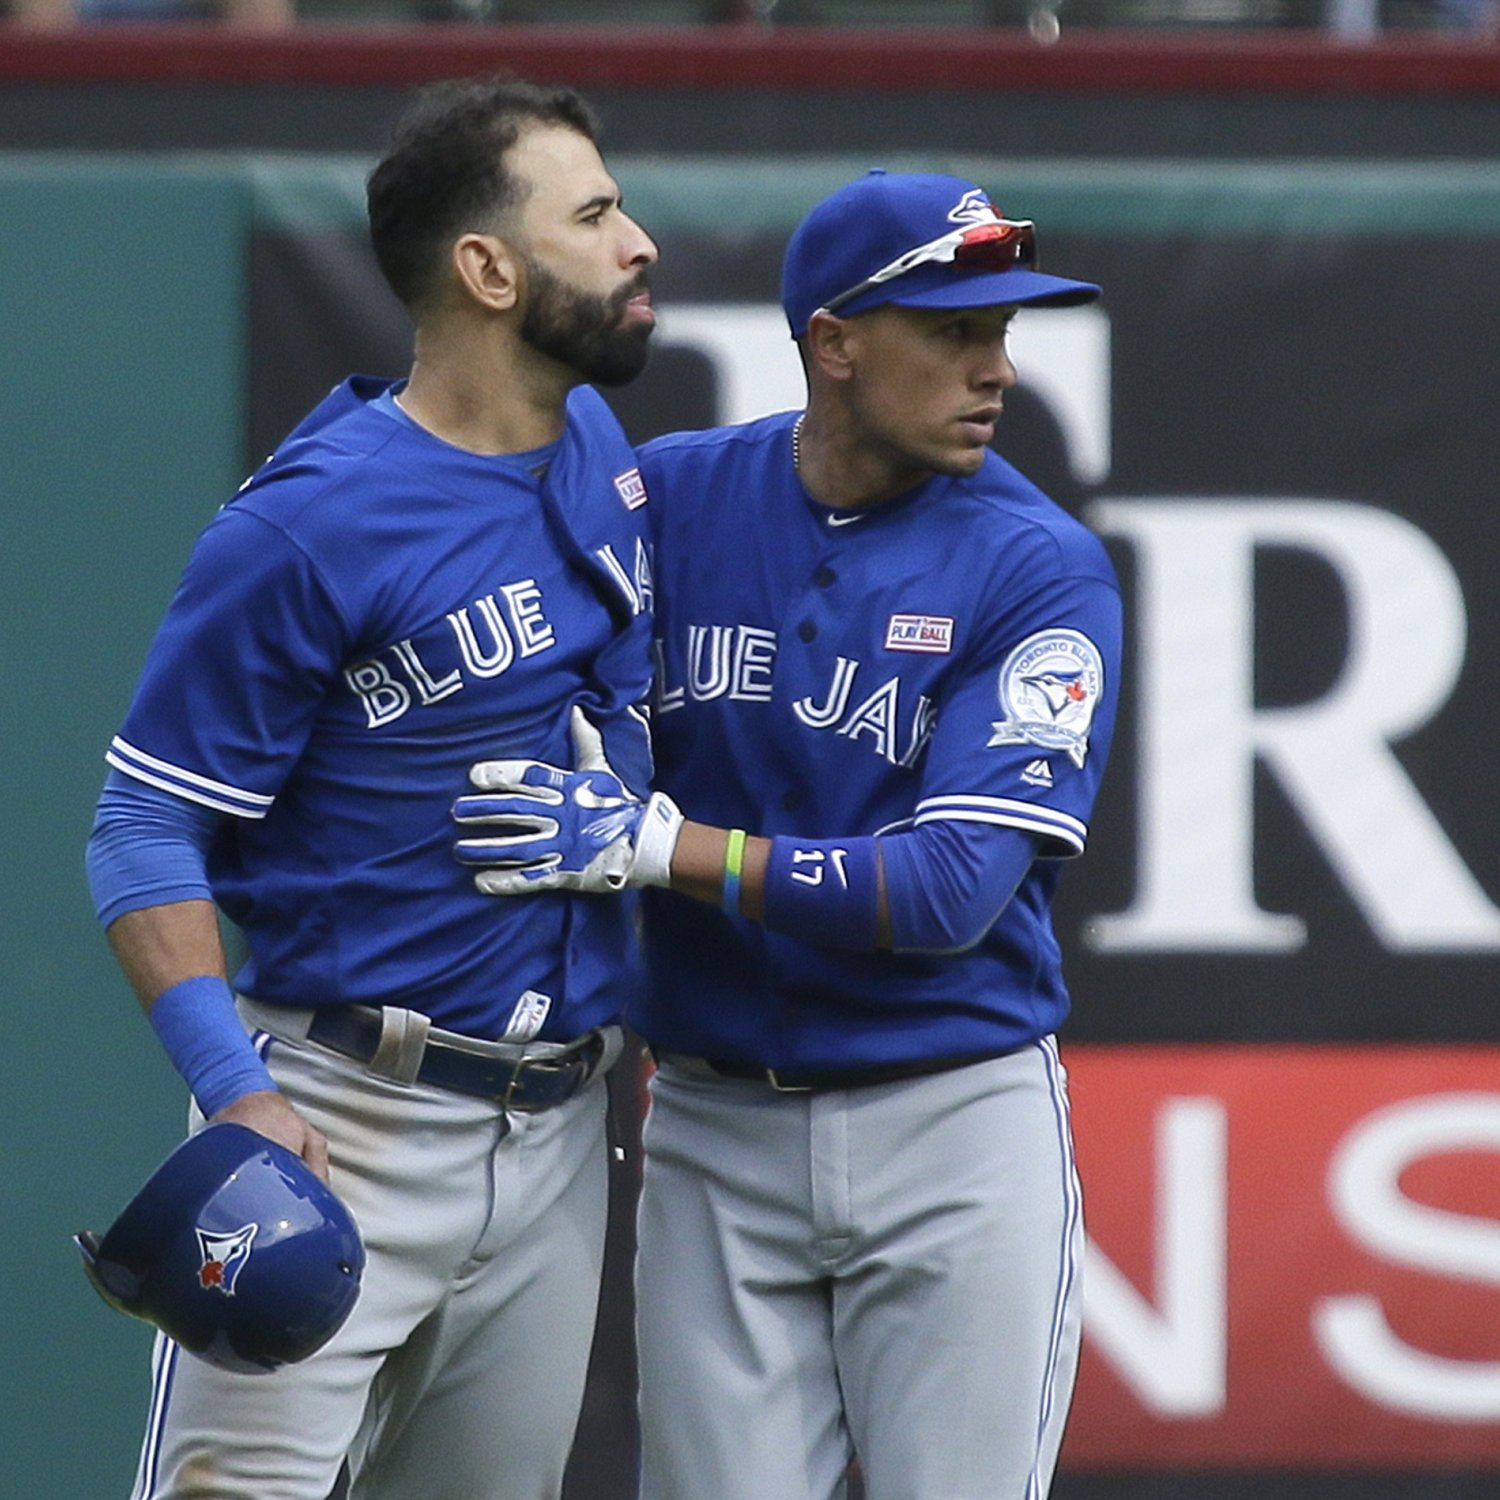 Rougned Odor Landed the Punch, but Jose Bautista Deserves Strong Punishment Too | Bleacher Report